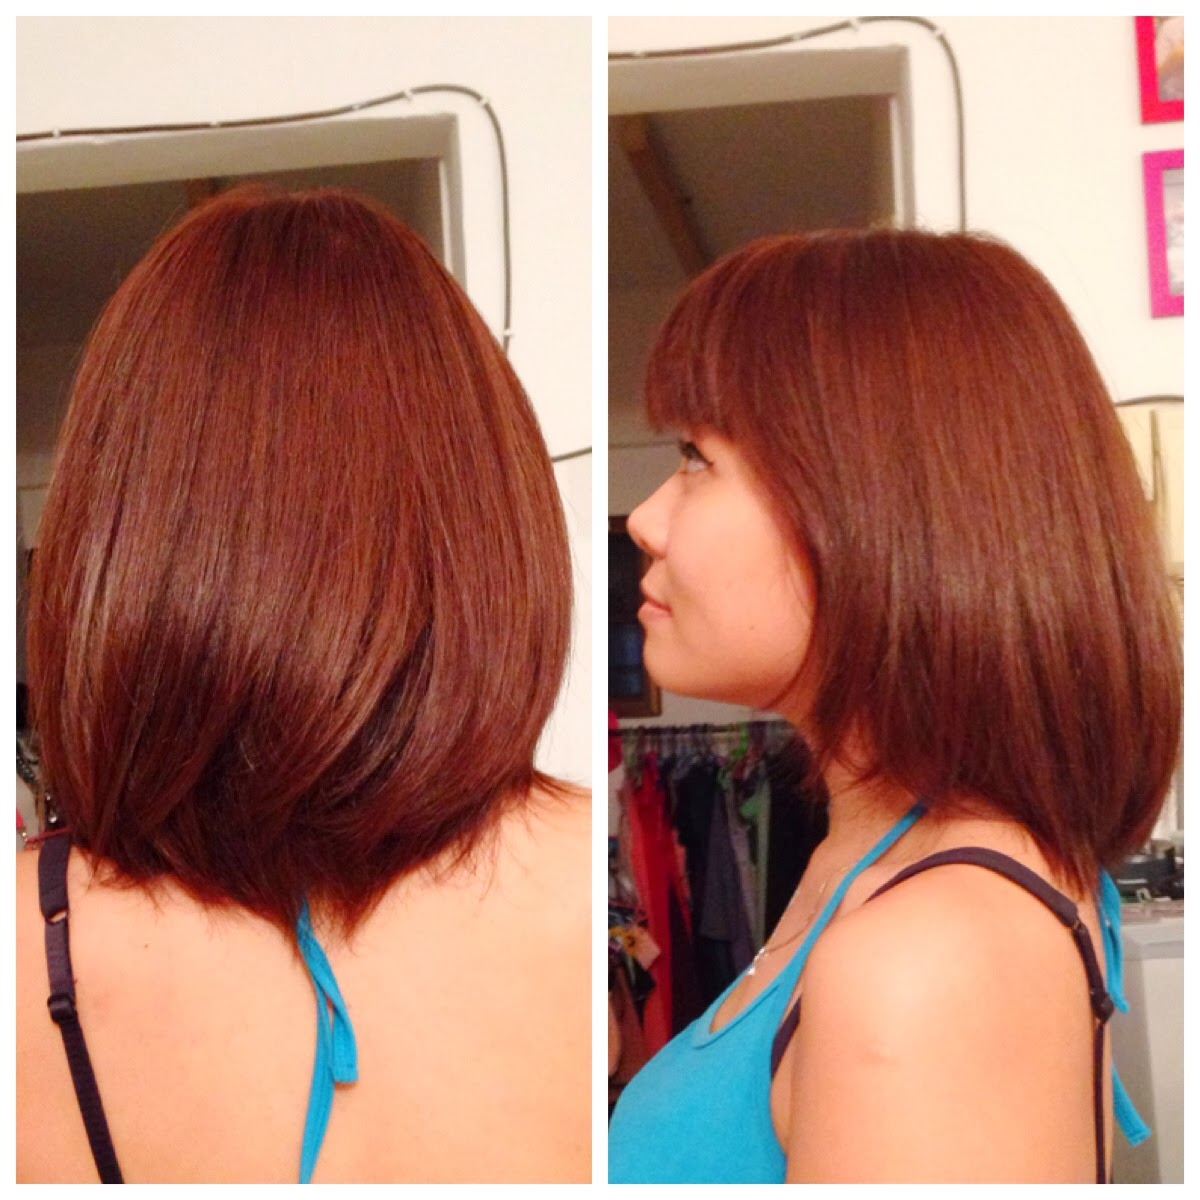 haircut and color cost average price for haircuts average cost of haircut 2013 5782